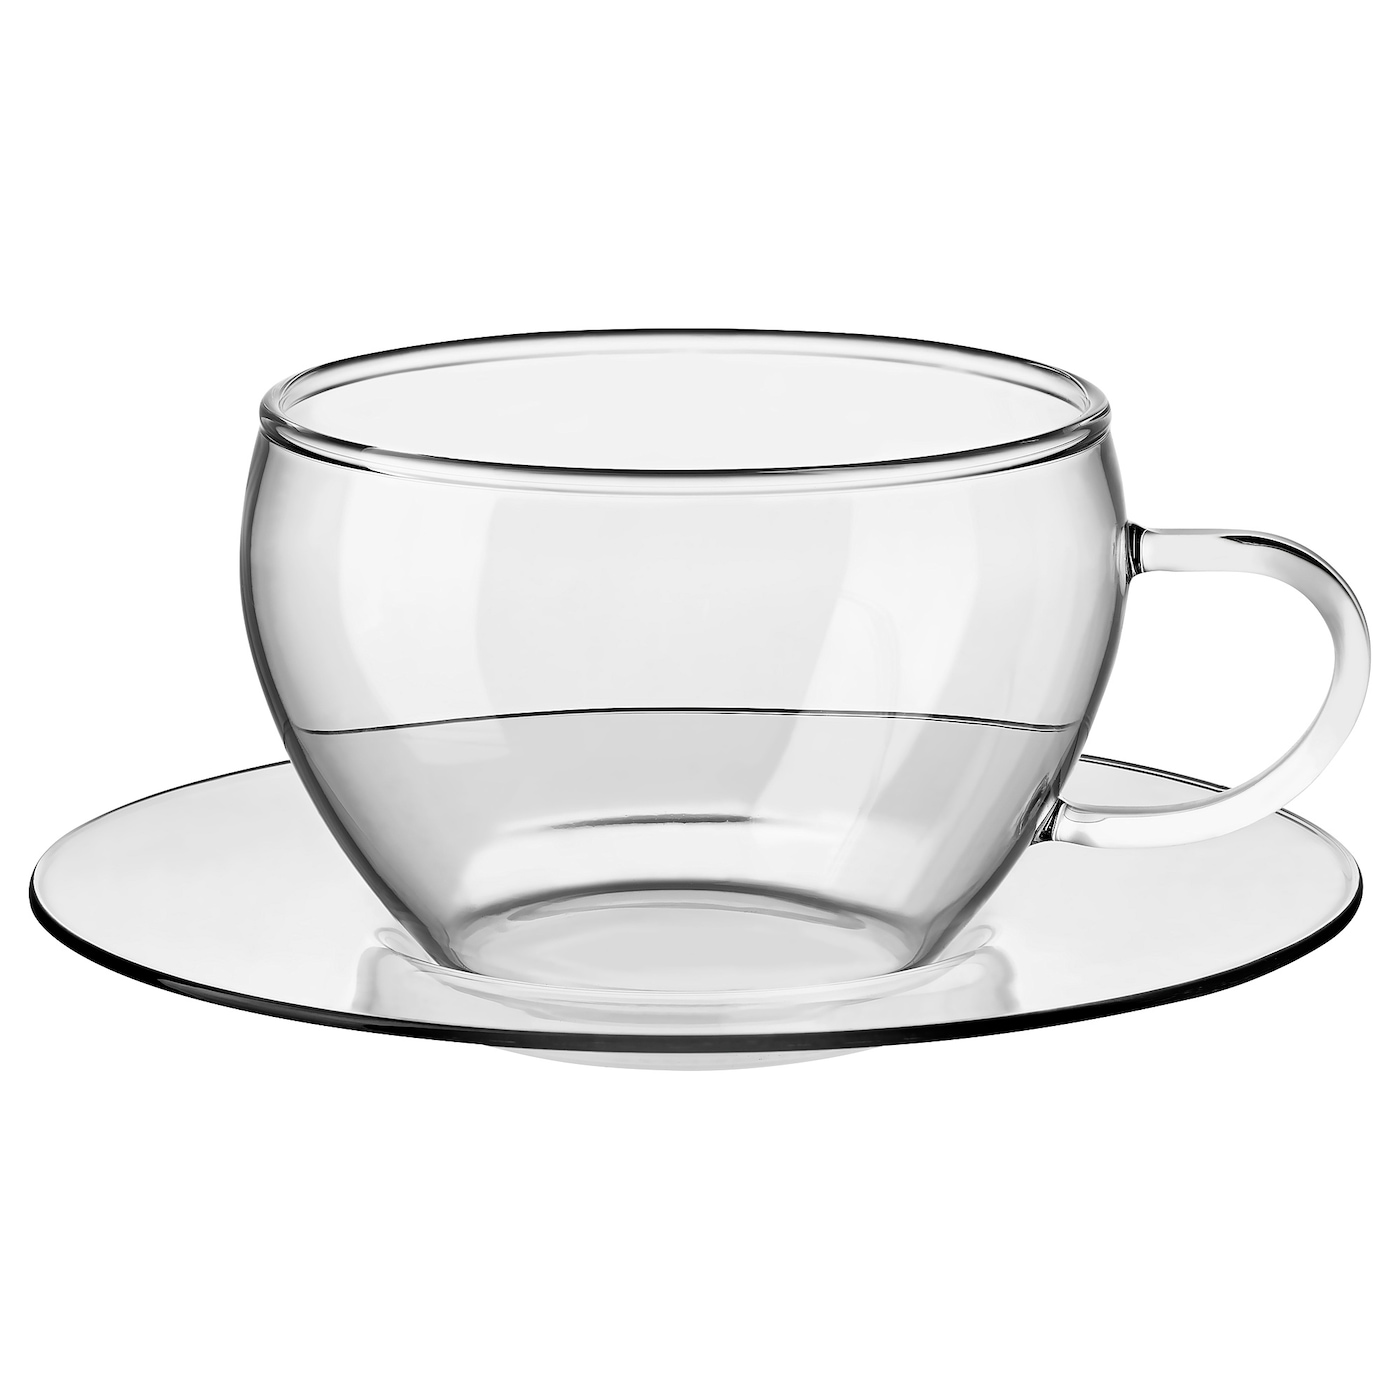 IKEA GLASBULT cup with saucer